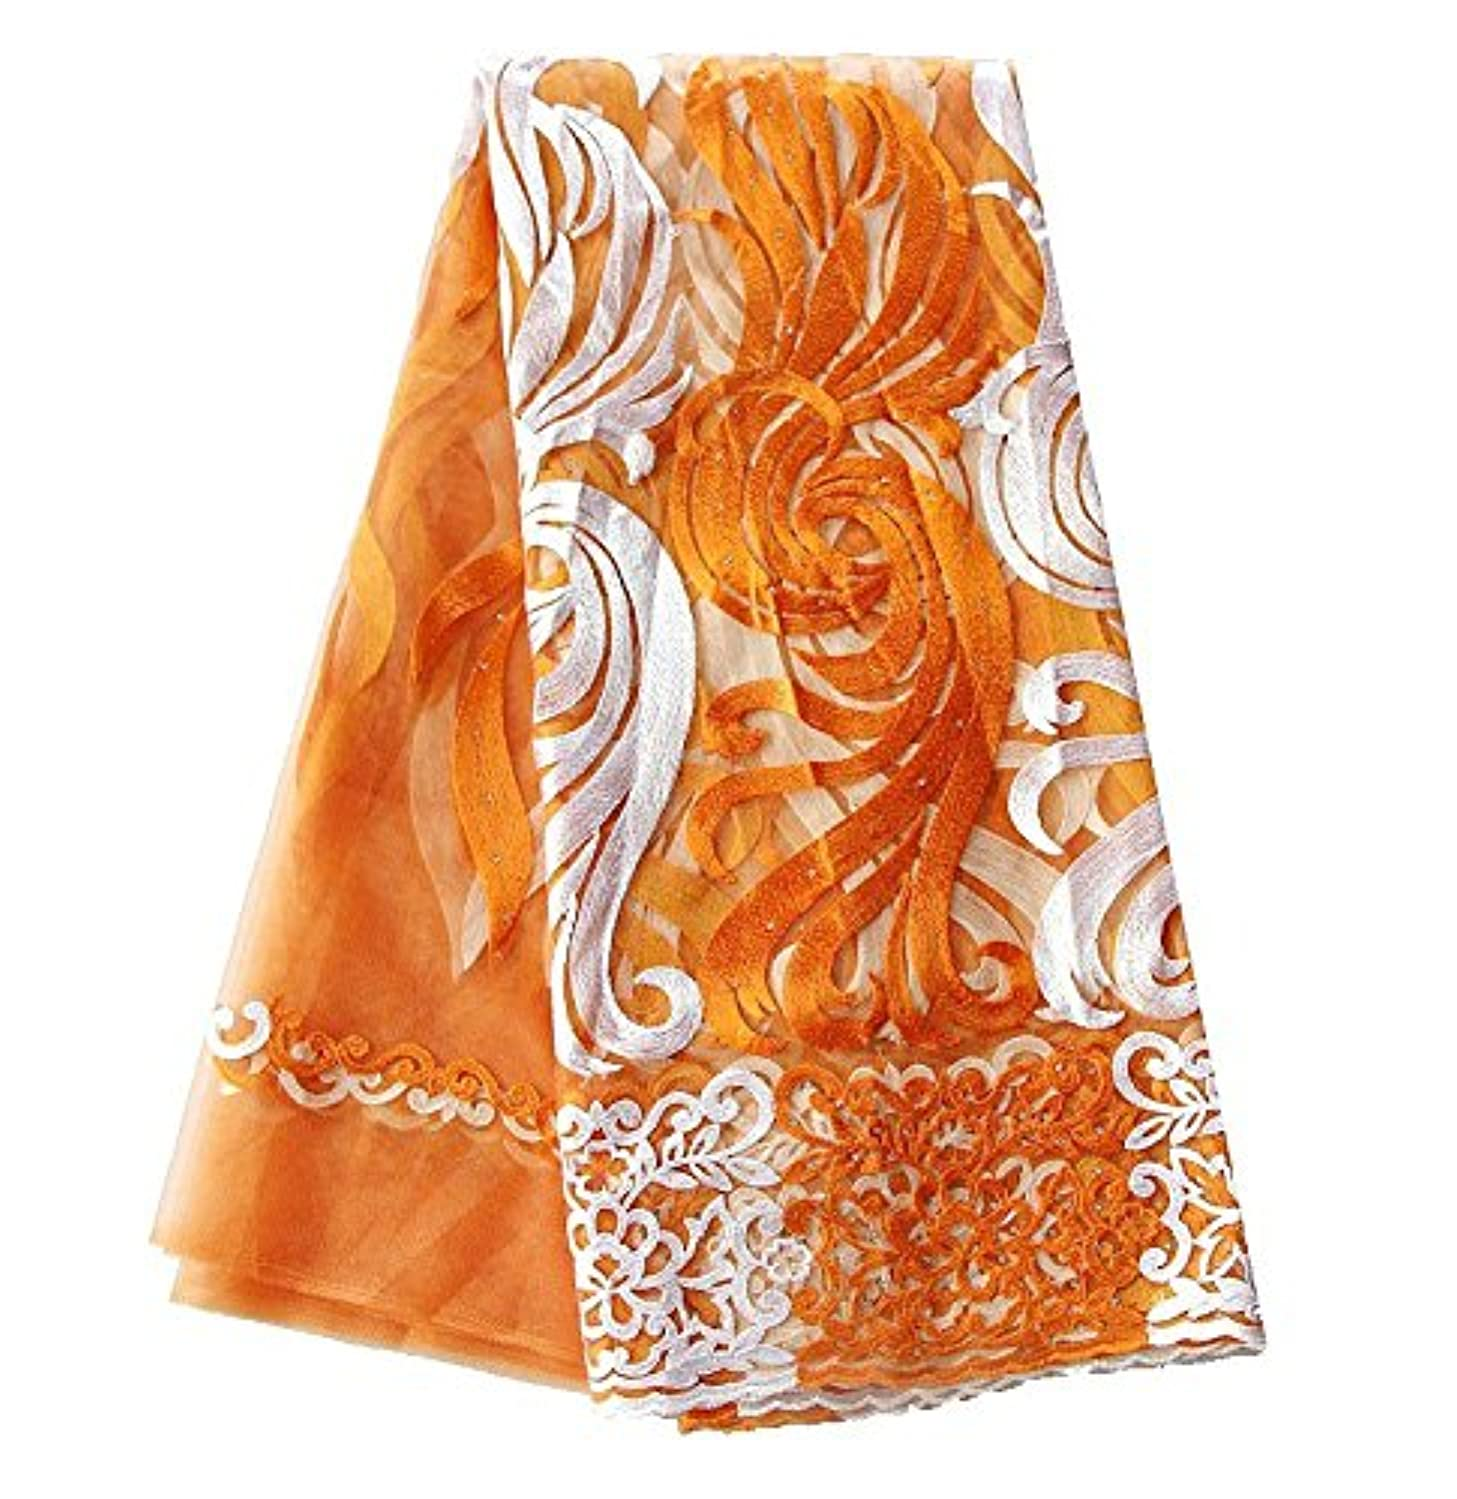 pqdaysun 5 Yards African Net Lace Fabrics Nigerian French Fabric Embroidered and Rhinestones Guipure Cord Lace F50378 (orange)